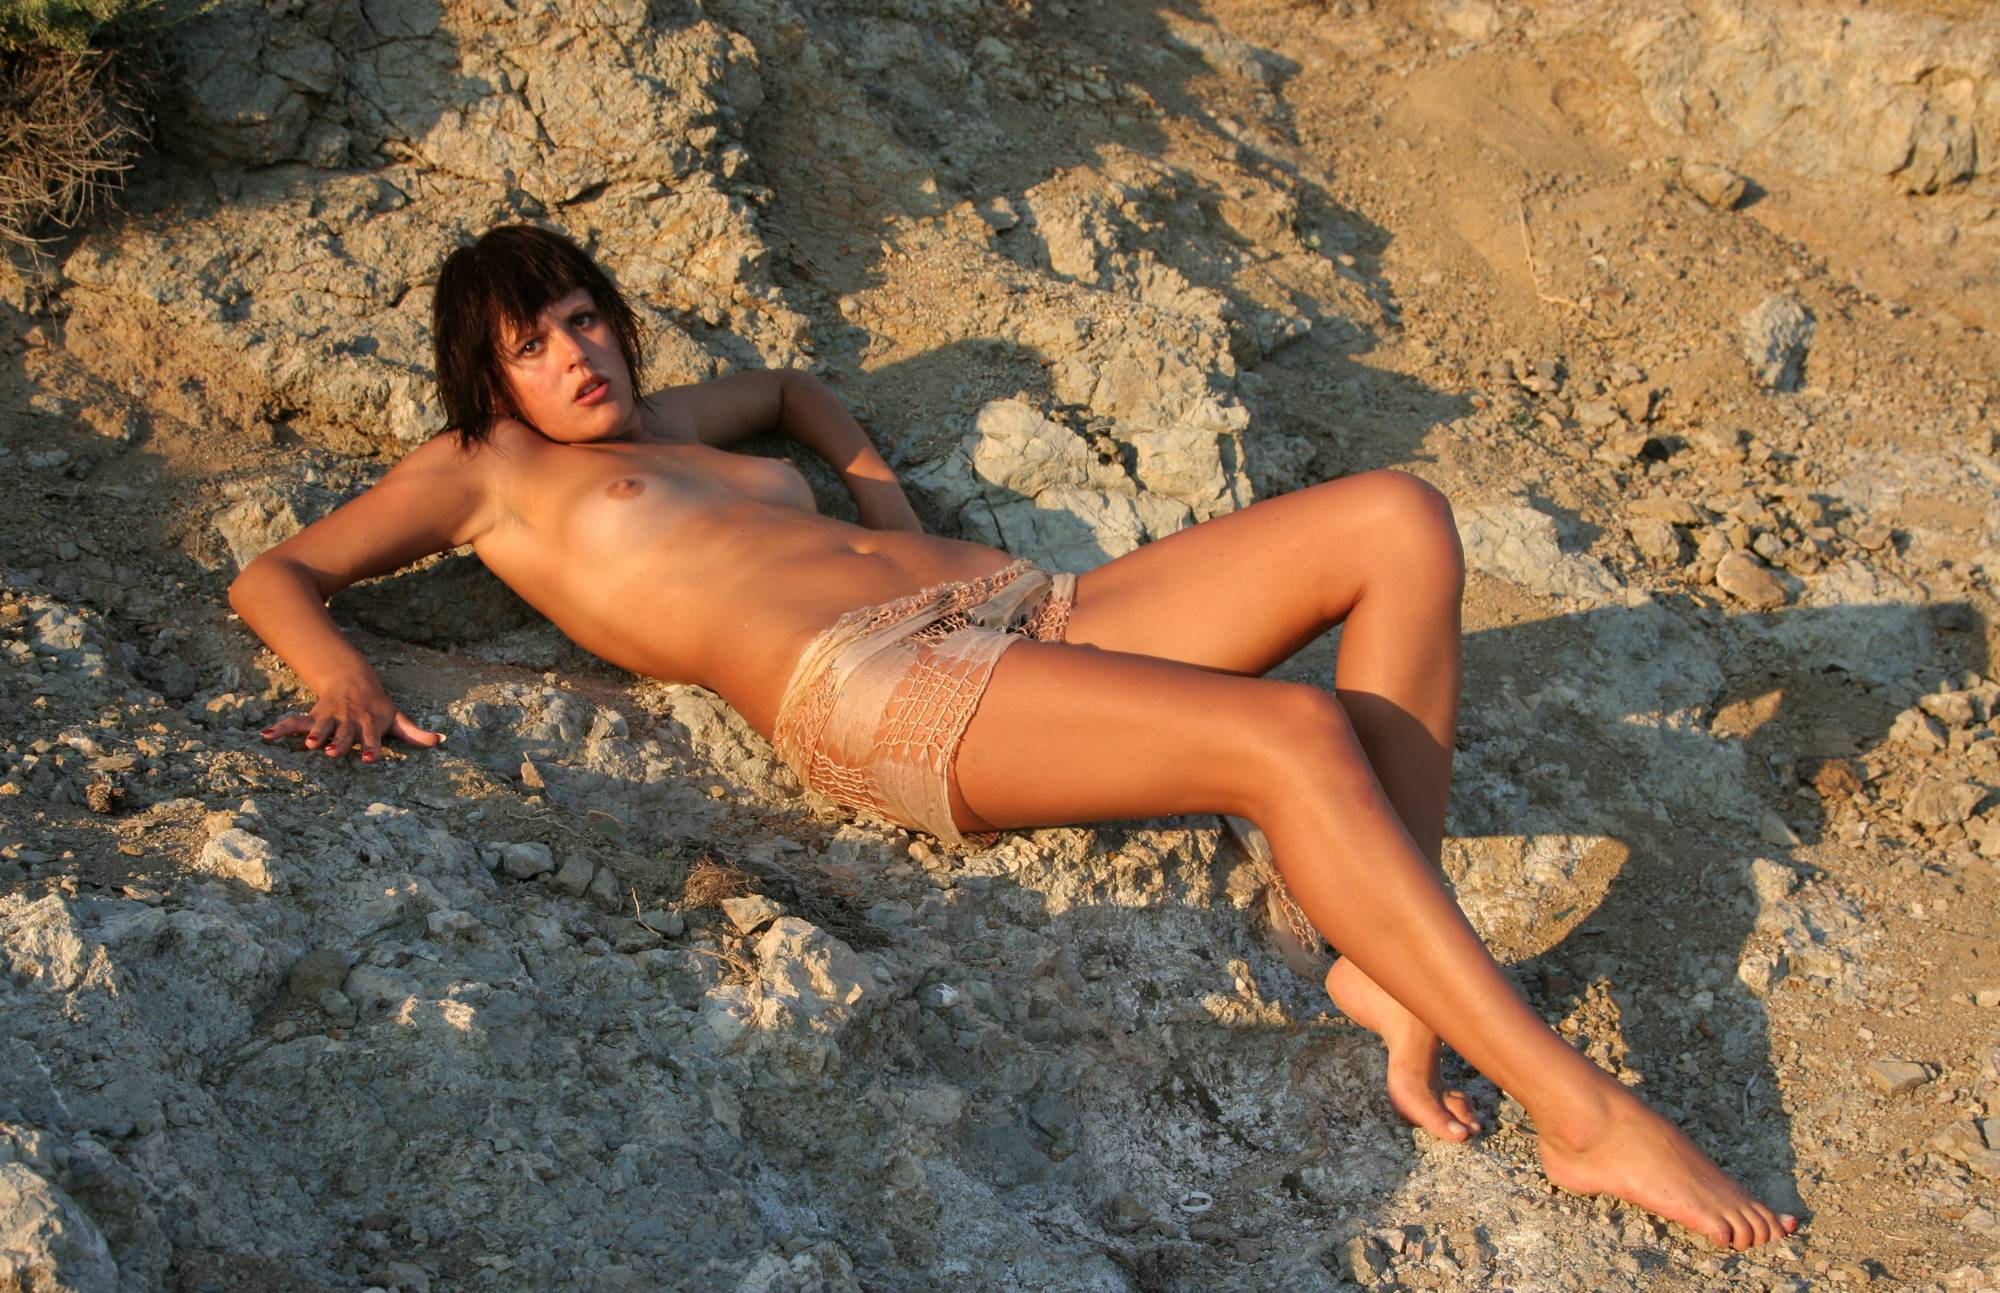 Nudist Pictures Against Rocky Backdrops - 1